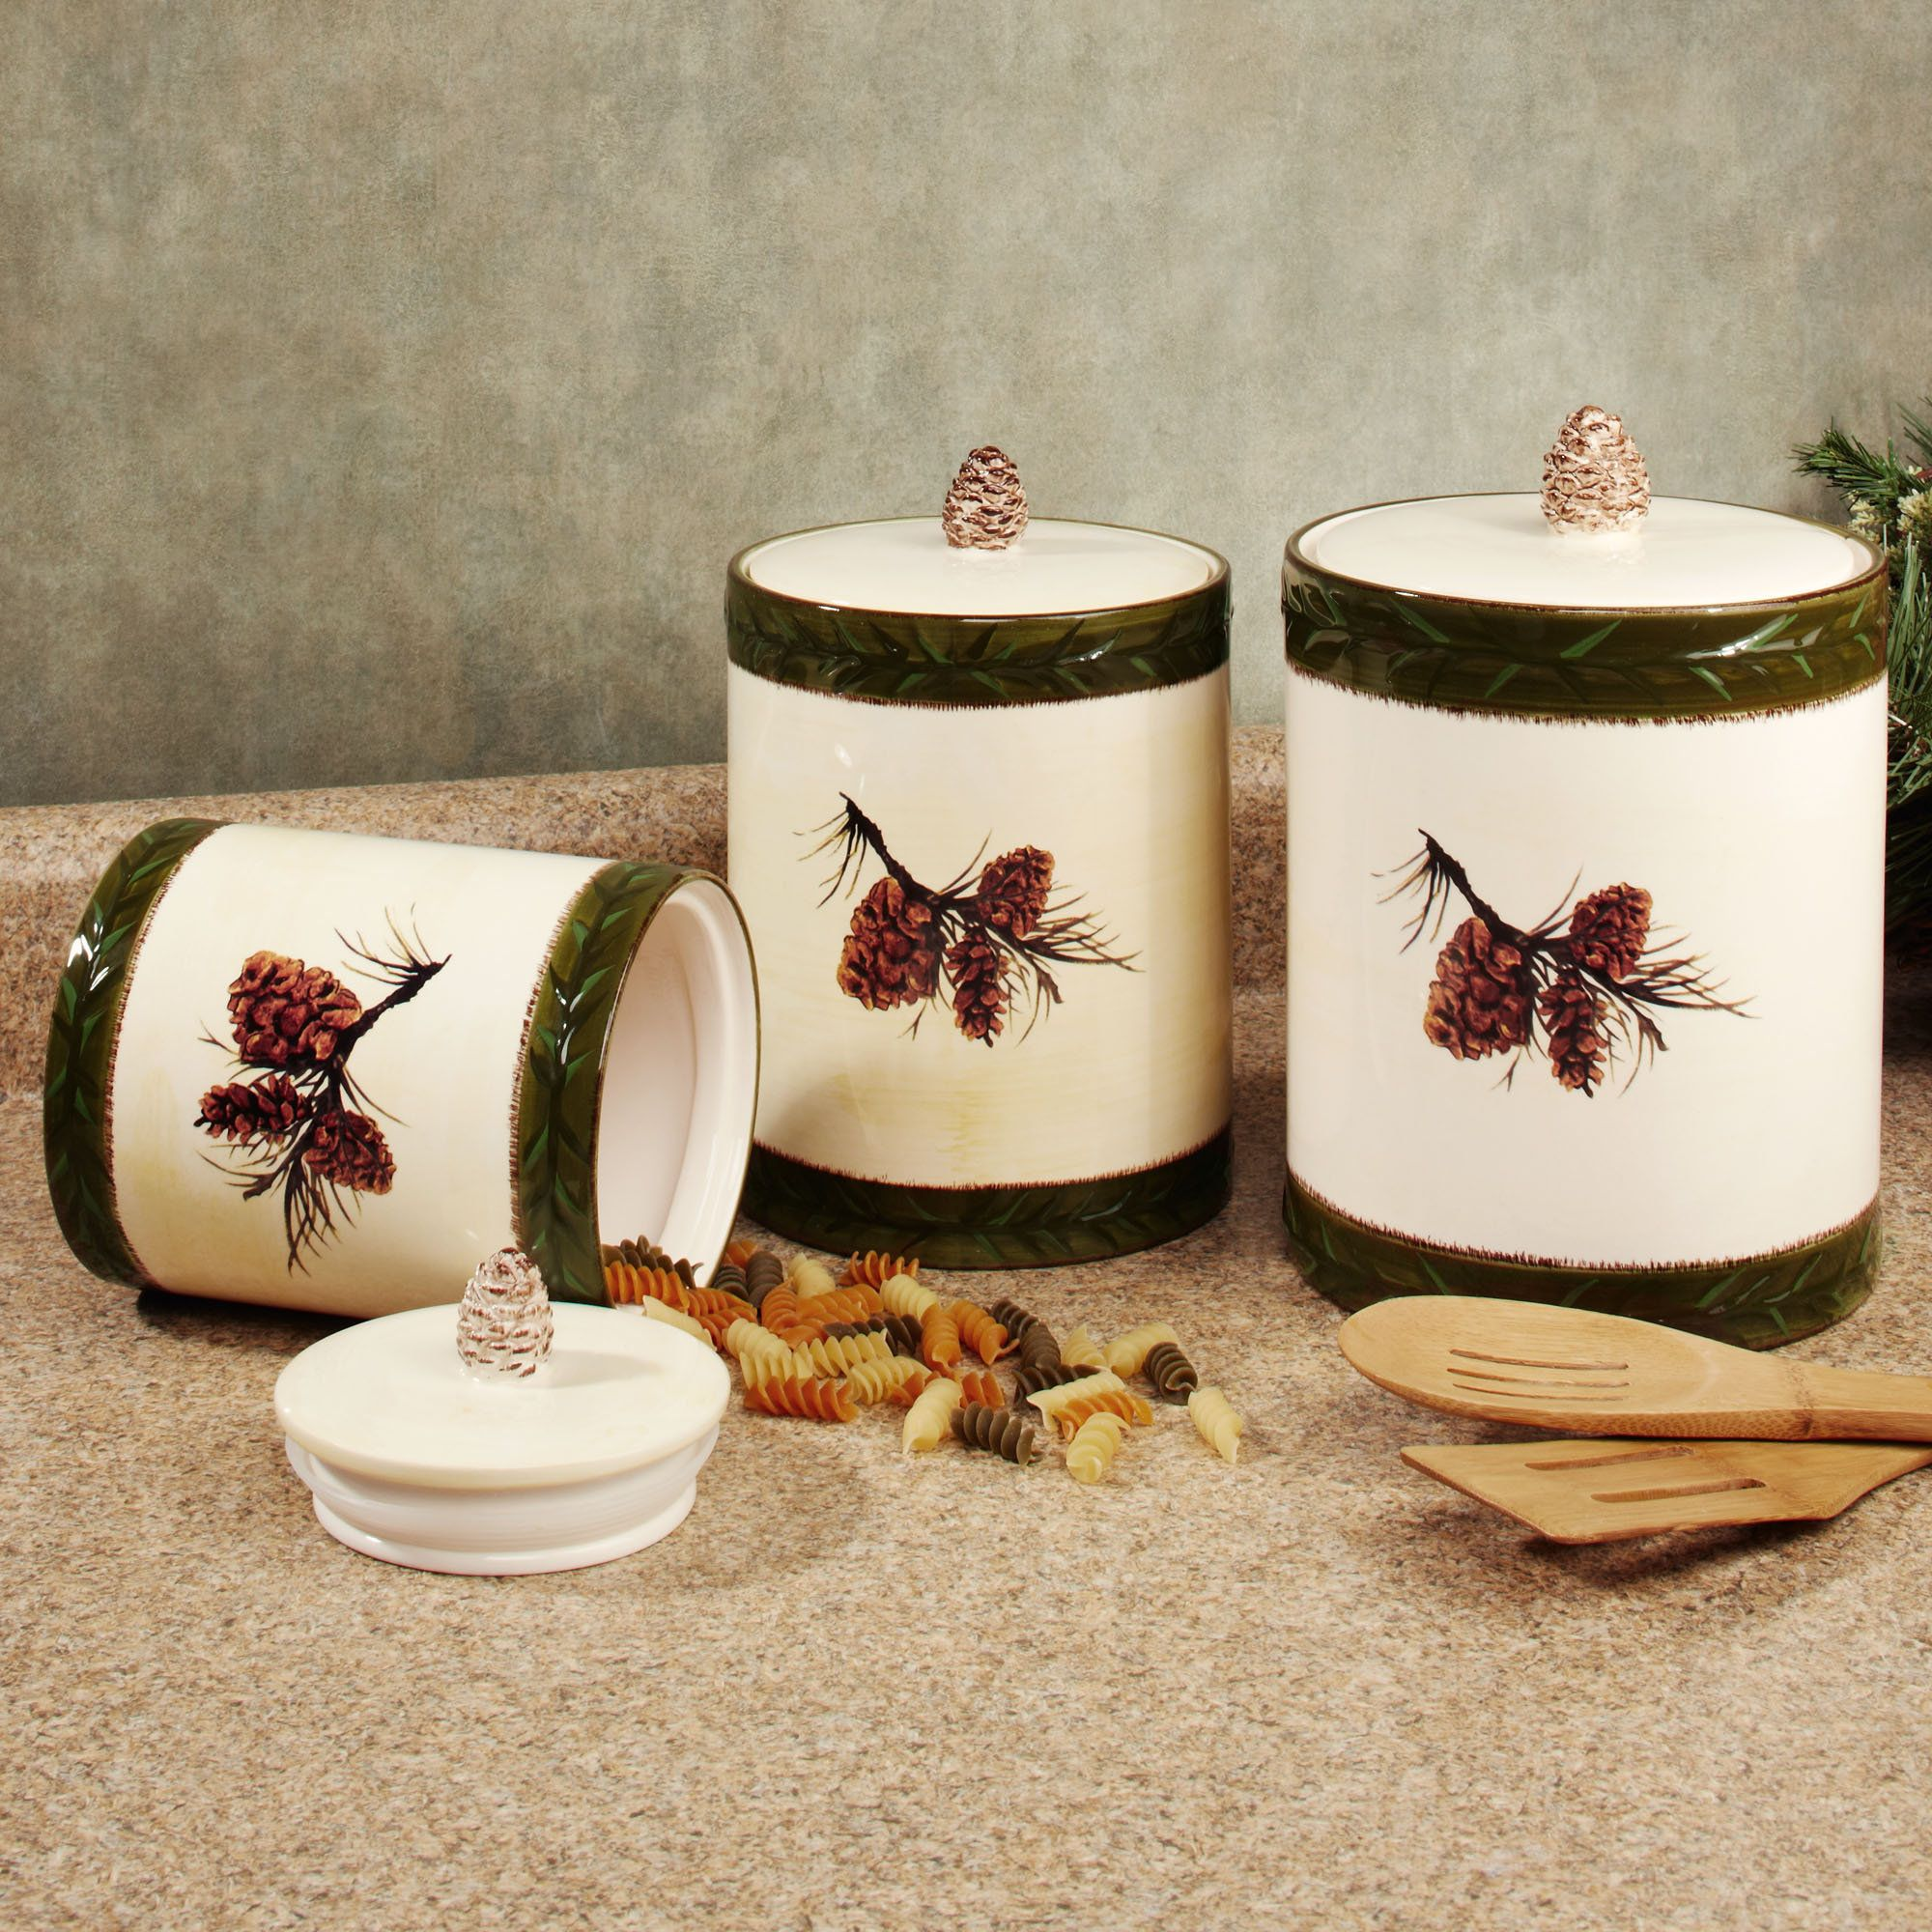 Pine Cone Rustic Kitchen Canister Set | Kitchen canister ...